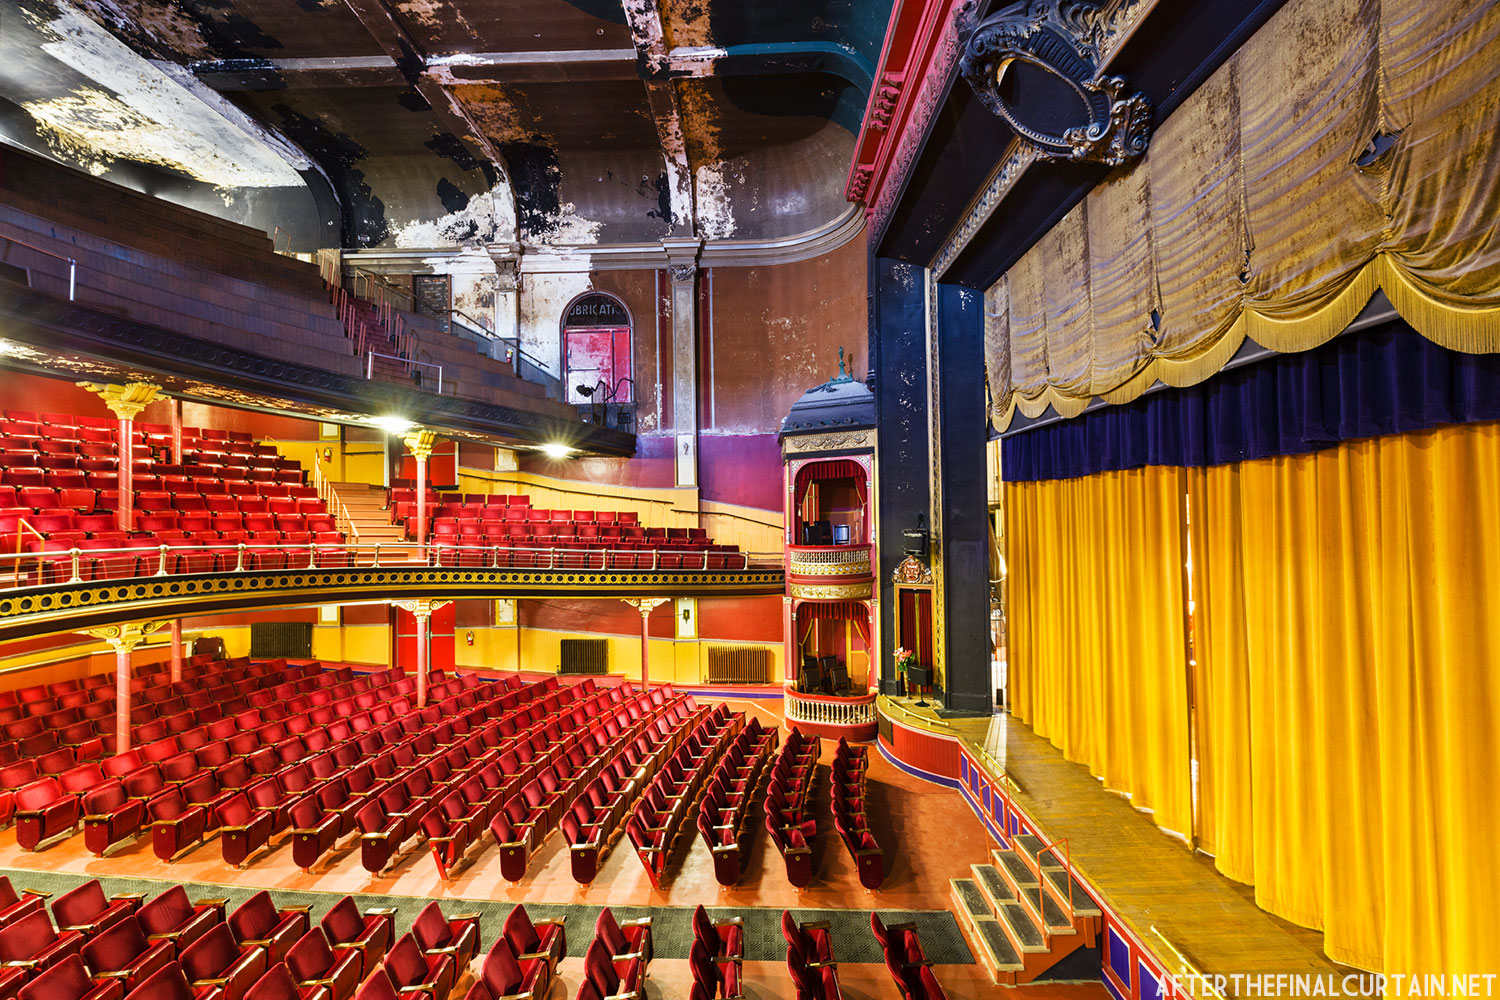 The sorge opera house has large beautiful golden curtains to highlight the classic look of the theatre